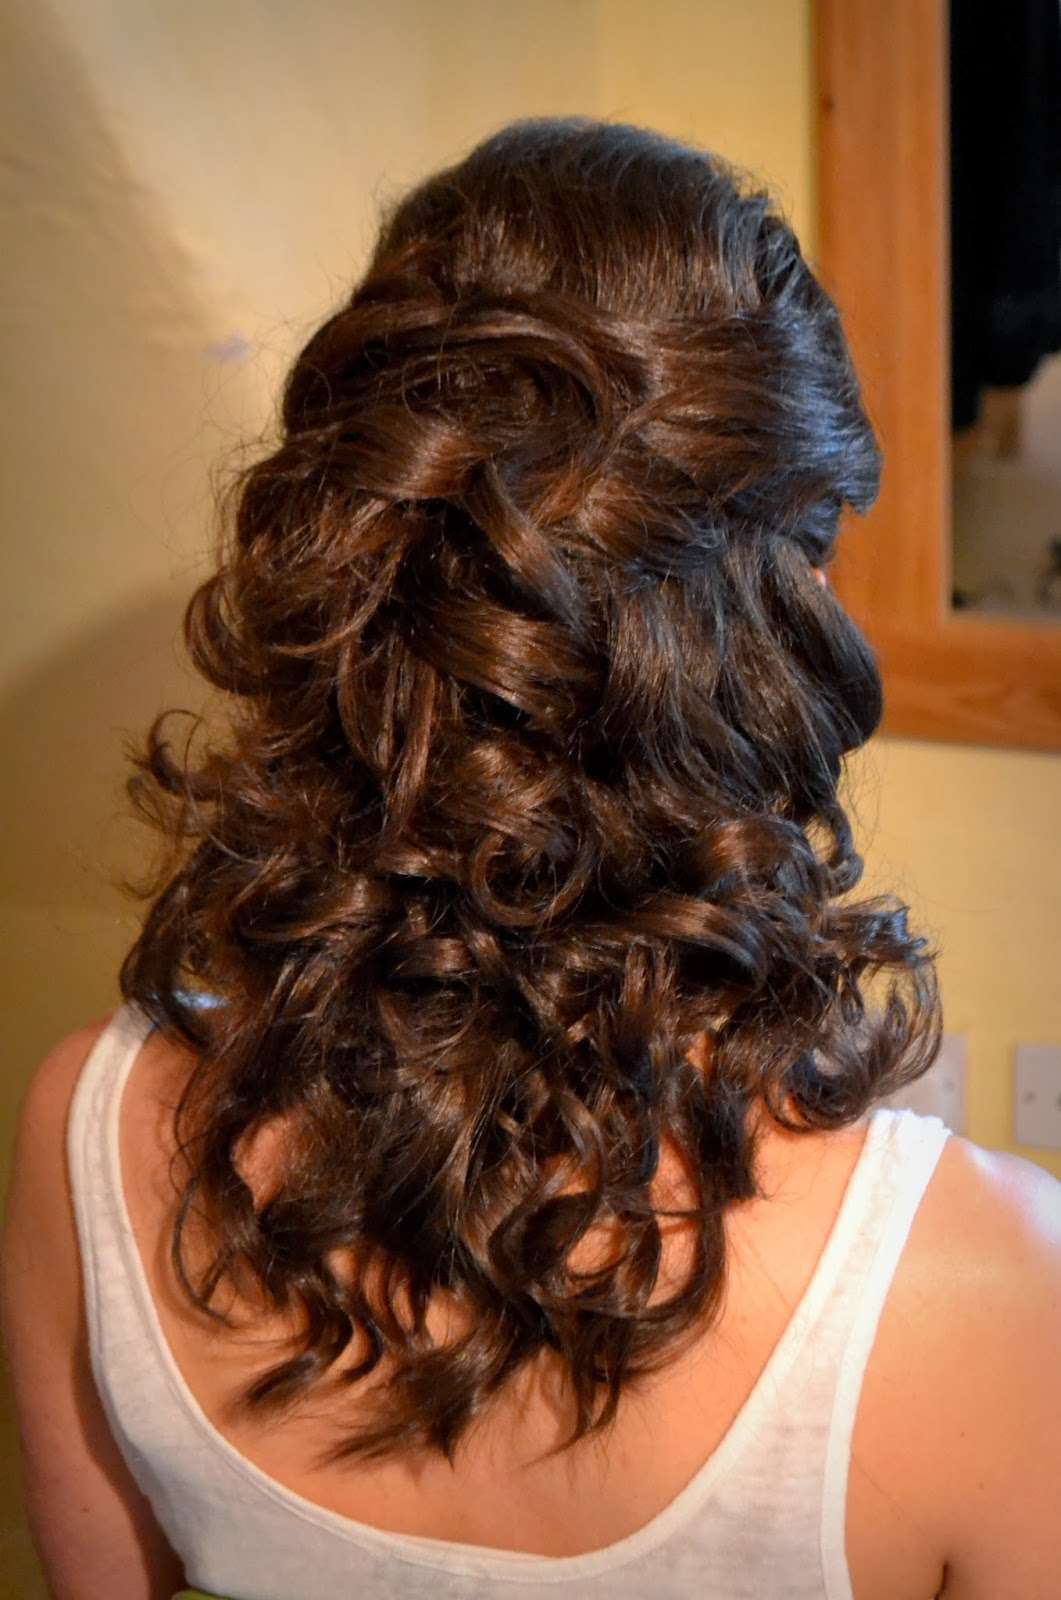 Fordham Hair Design Wedding Bridal Hair Specialist November 2013